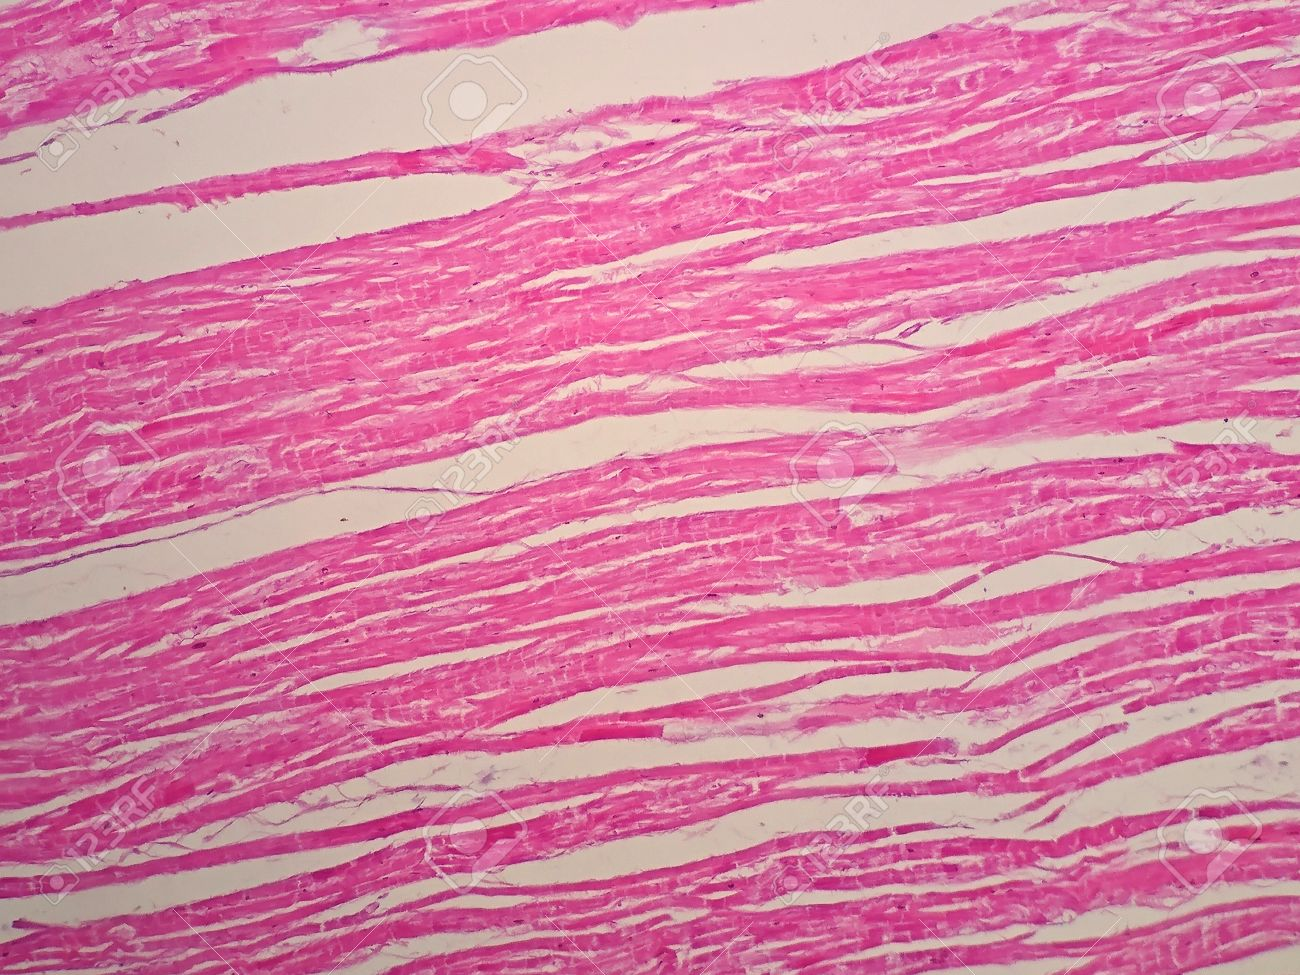 histology of cardiac muscle under microscope view stock photo, Muscles